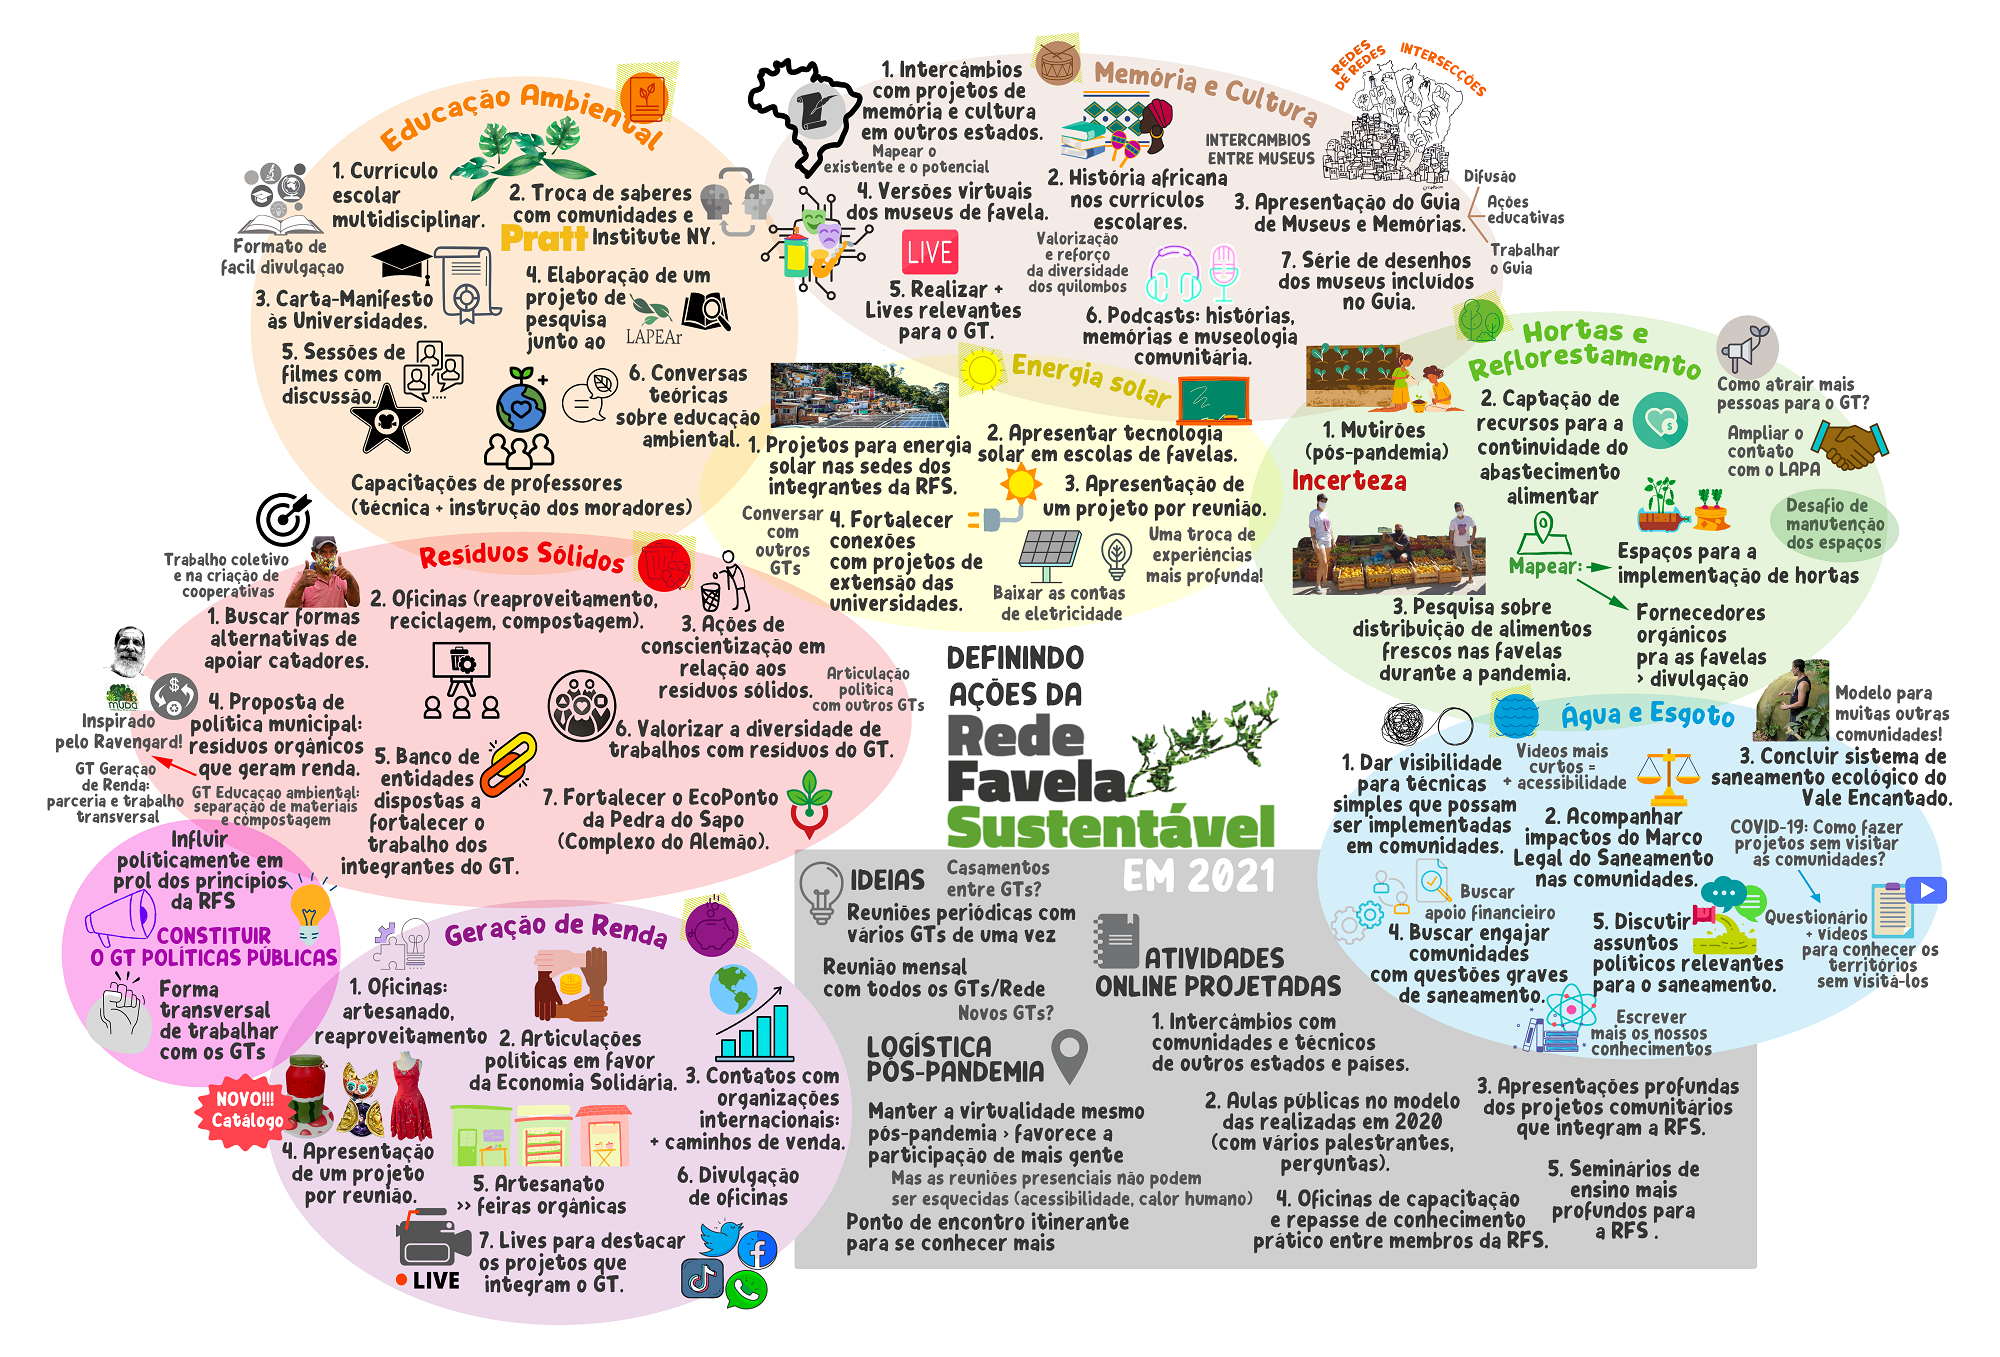 Future perspectives for the actions of the Sustainable Favela Network.